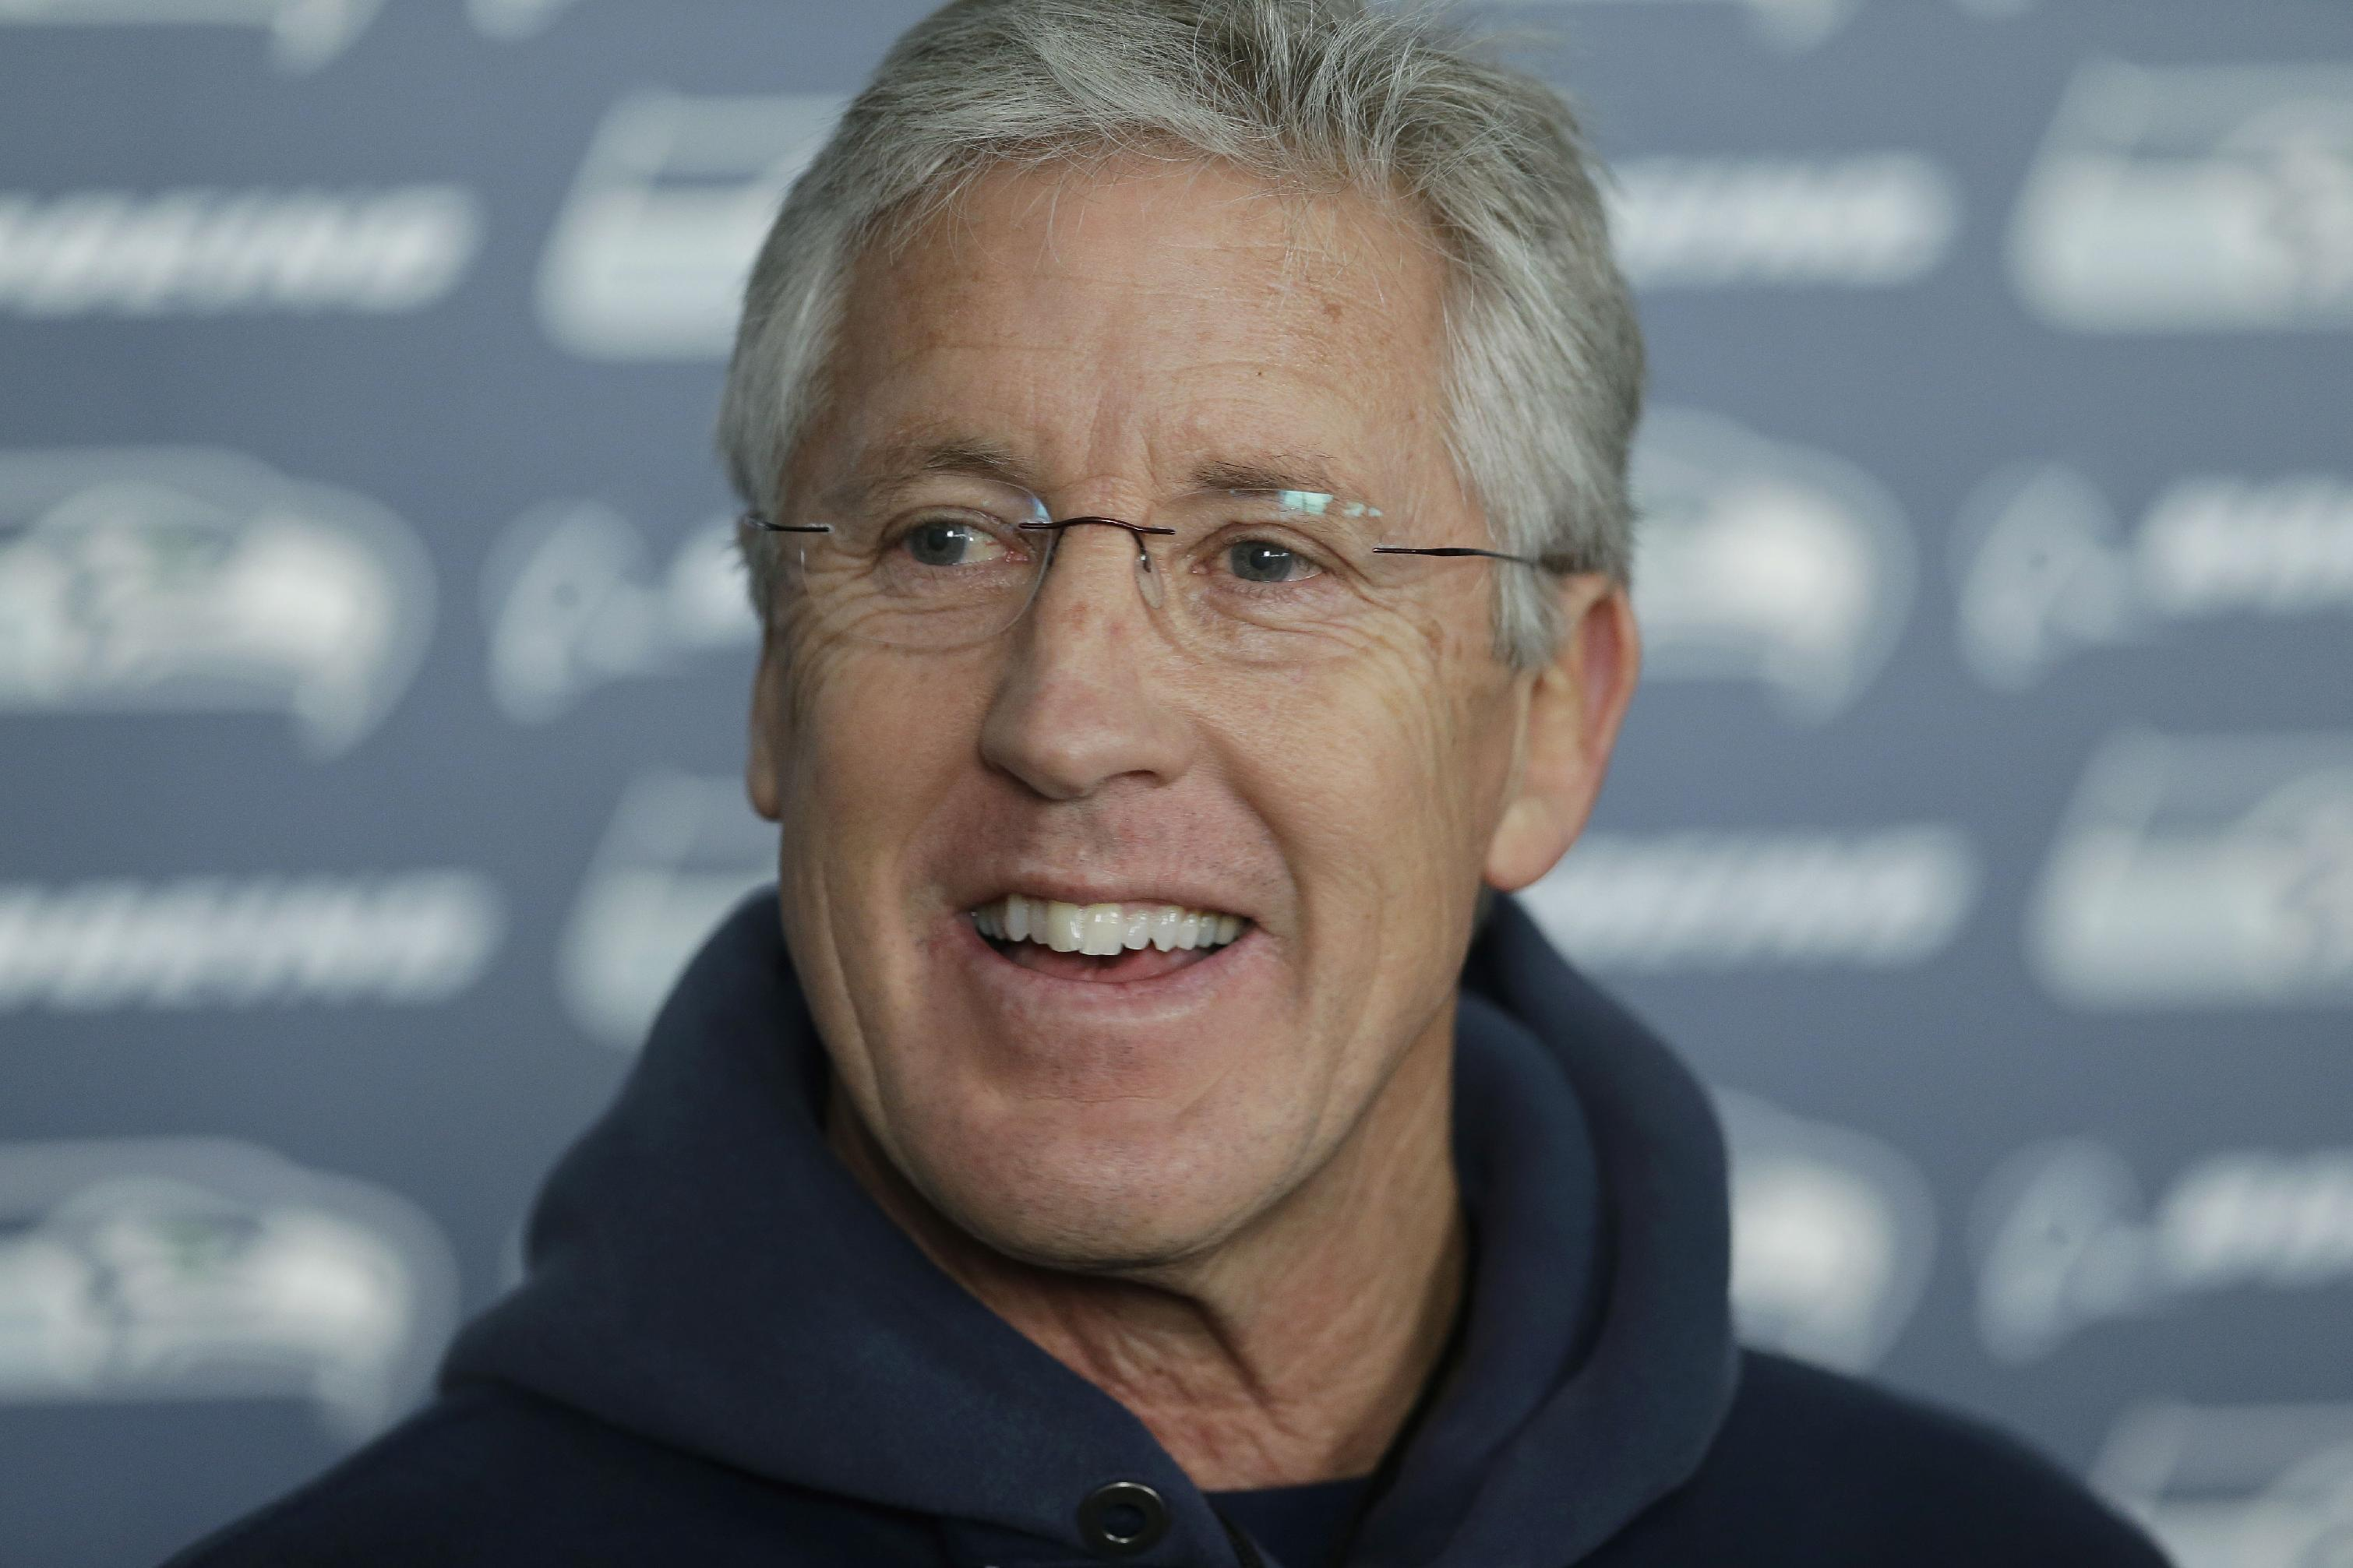 Seattle Seahawks head coach Pete Carroll talks to reporters after NFL football practice, Friday, Jan. 24, 2014, in Renton, Wash. The Seahawks will play the Denver Broncos Feb. 2, 2014 in the Super Bowl